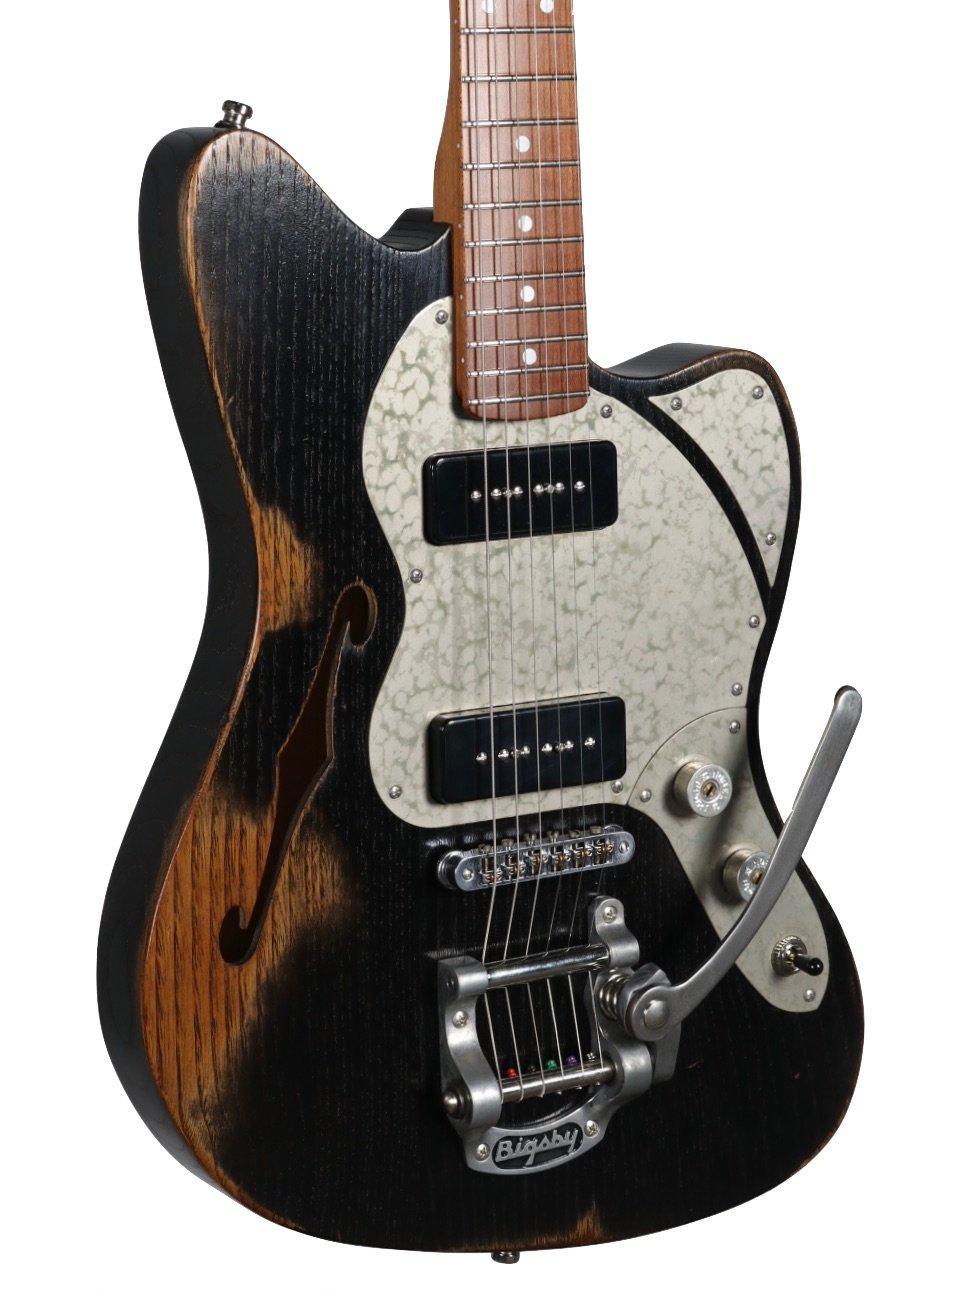 Paoletti Nancy 112 Jazzmaster 2P90 Faded Black  #92520 - Paoletti - Heartbreaker Guitars